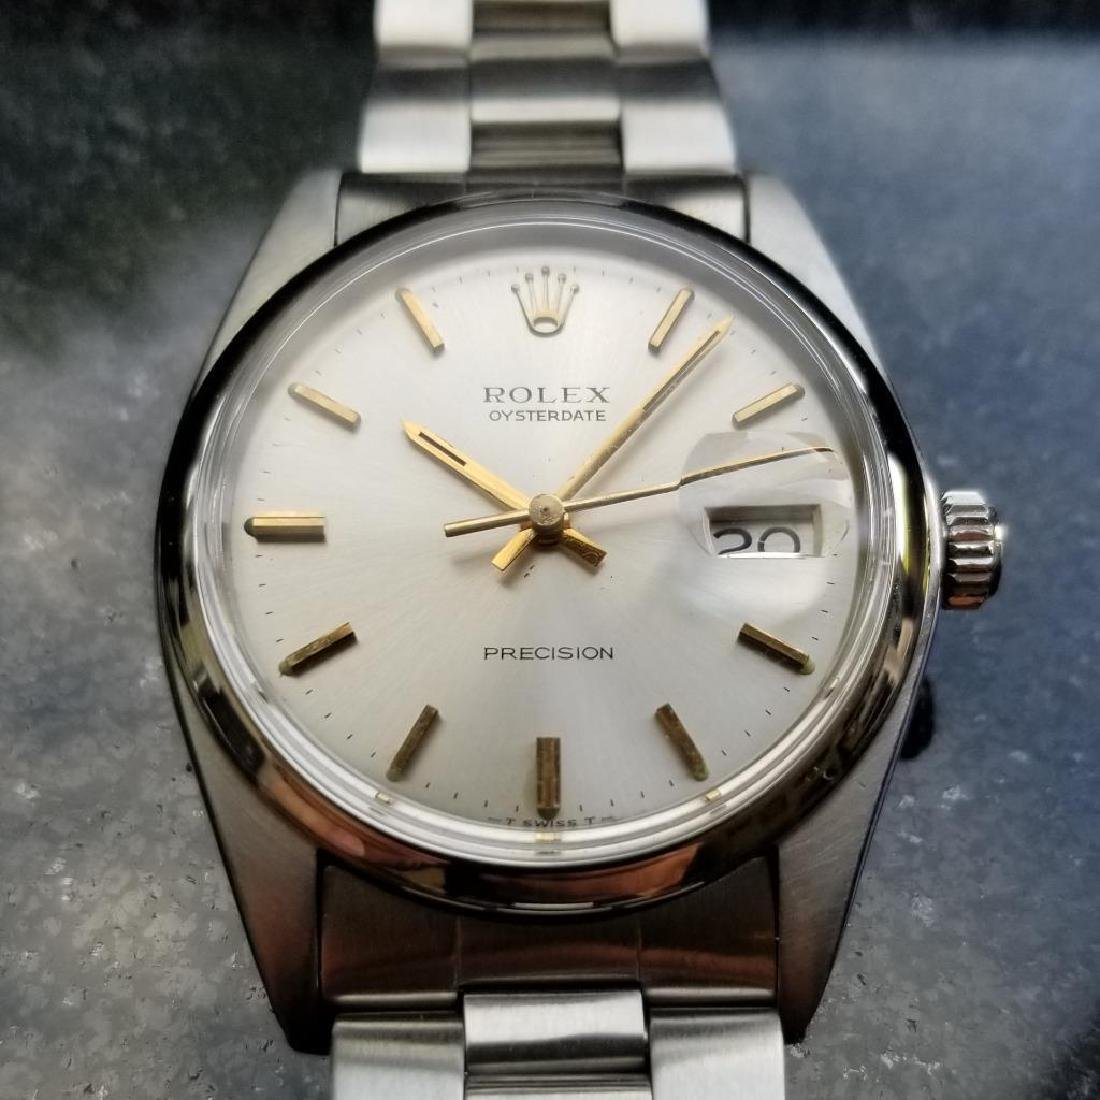 Rolex Oysterdate Precision Vintage 6694 Manual 1973